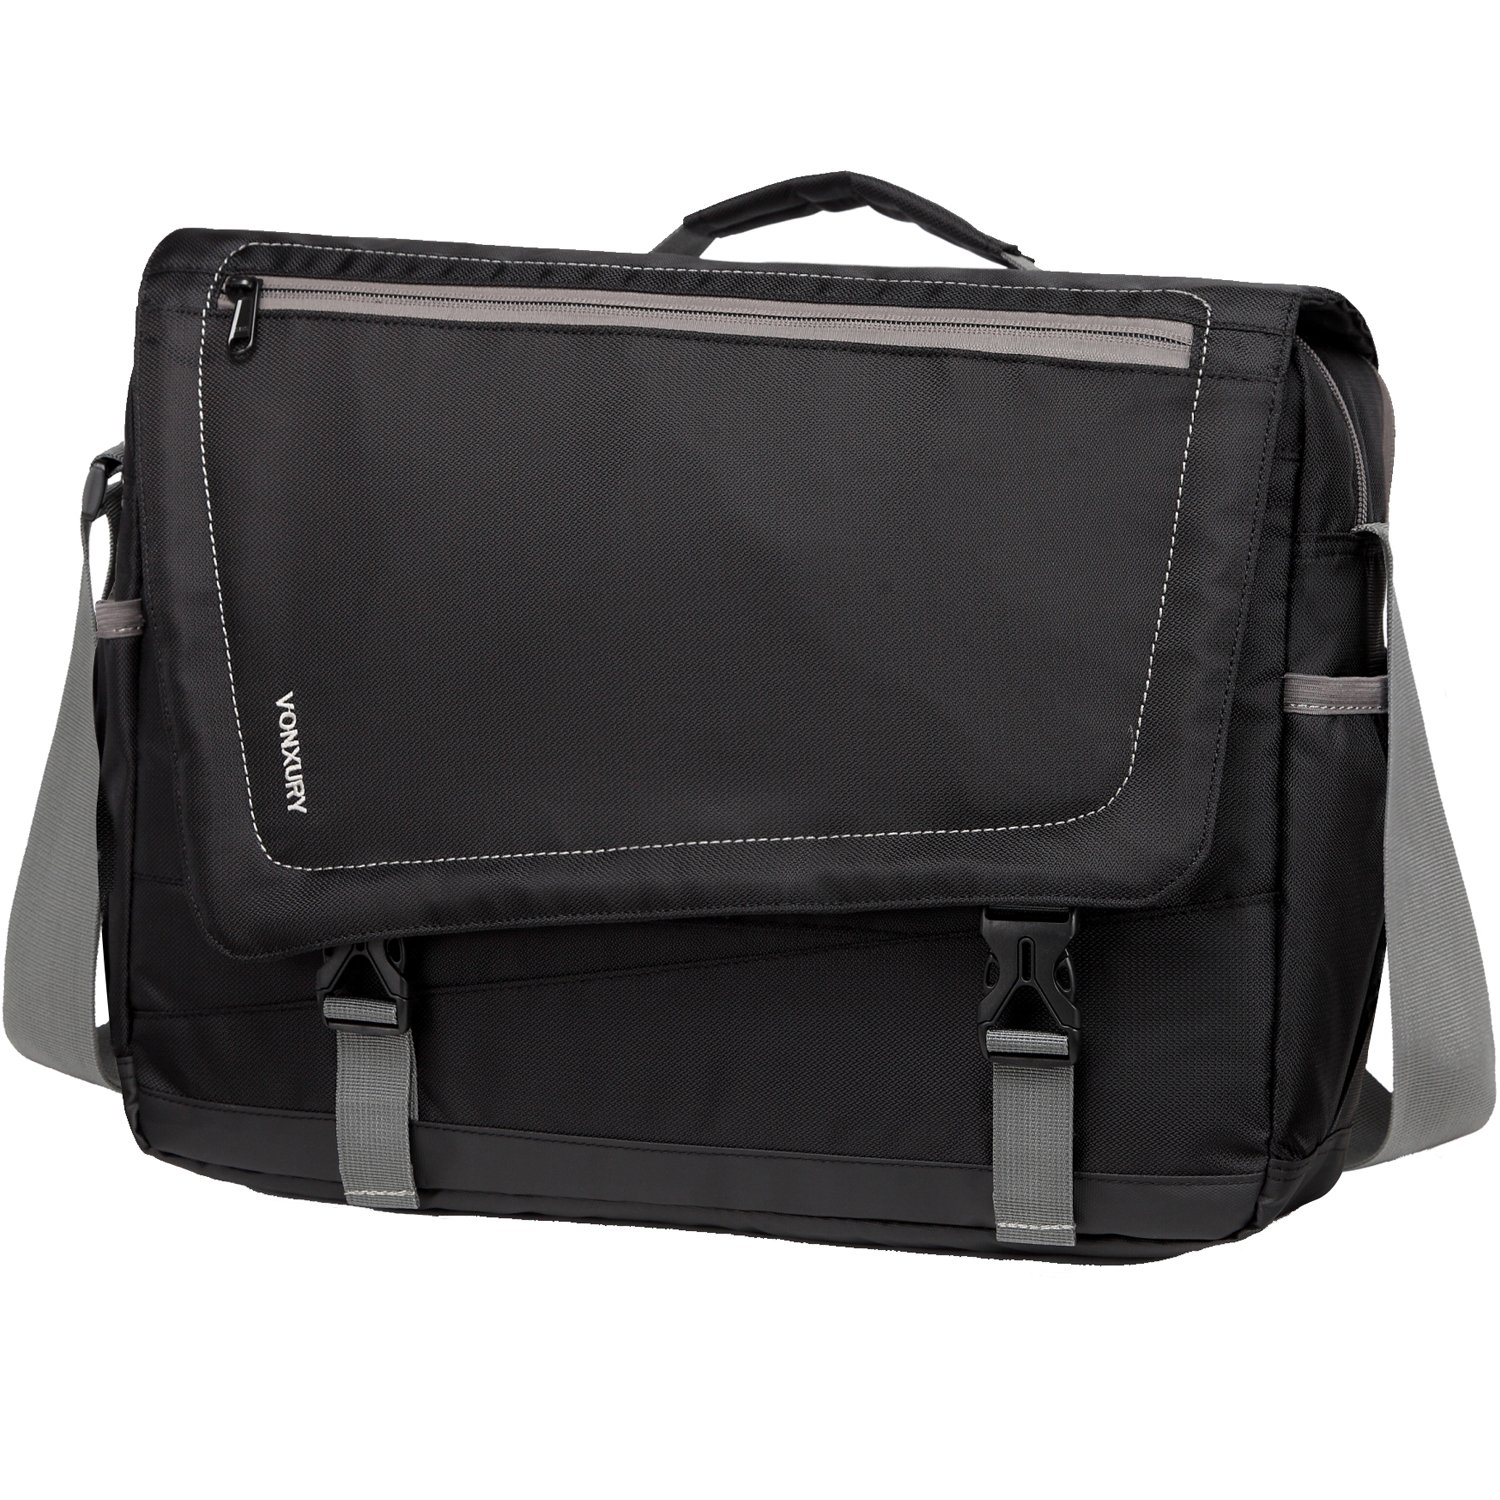 Best Leather Messenger Bags Mens - CEAGESP 4864b9724a39f